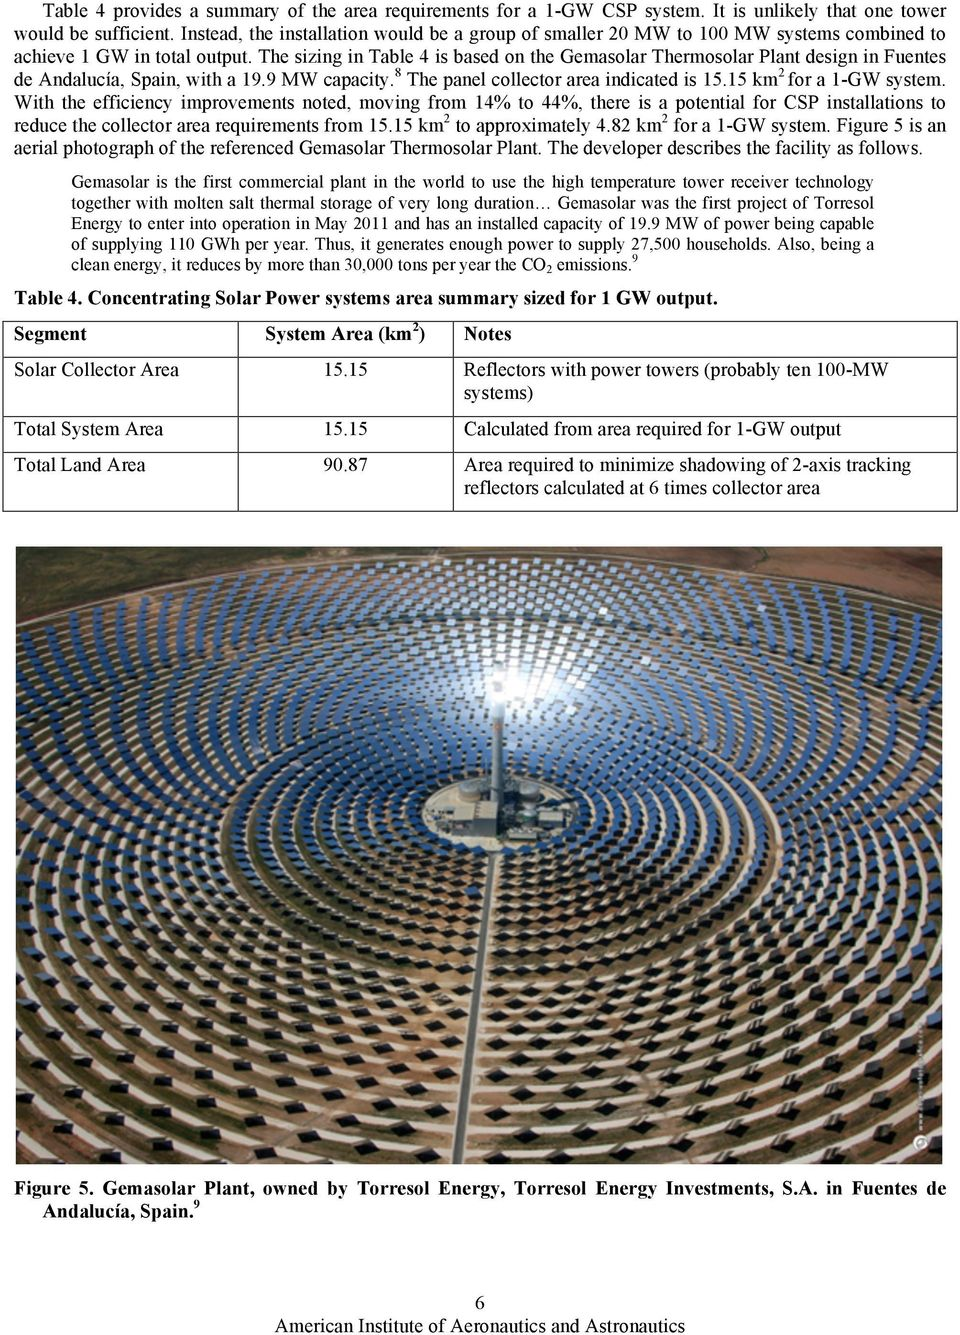 The sizing in Table 4 is based on the Gemasolar Thermosolar Plant design in Fuentes de Andalucía, Spain, with a 19.9 MW capacity. 8 The panel collector area indicated is 15.15 km 2 for a 1-GW system.